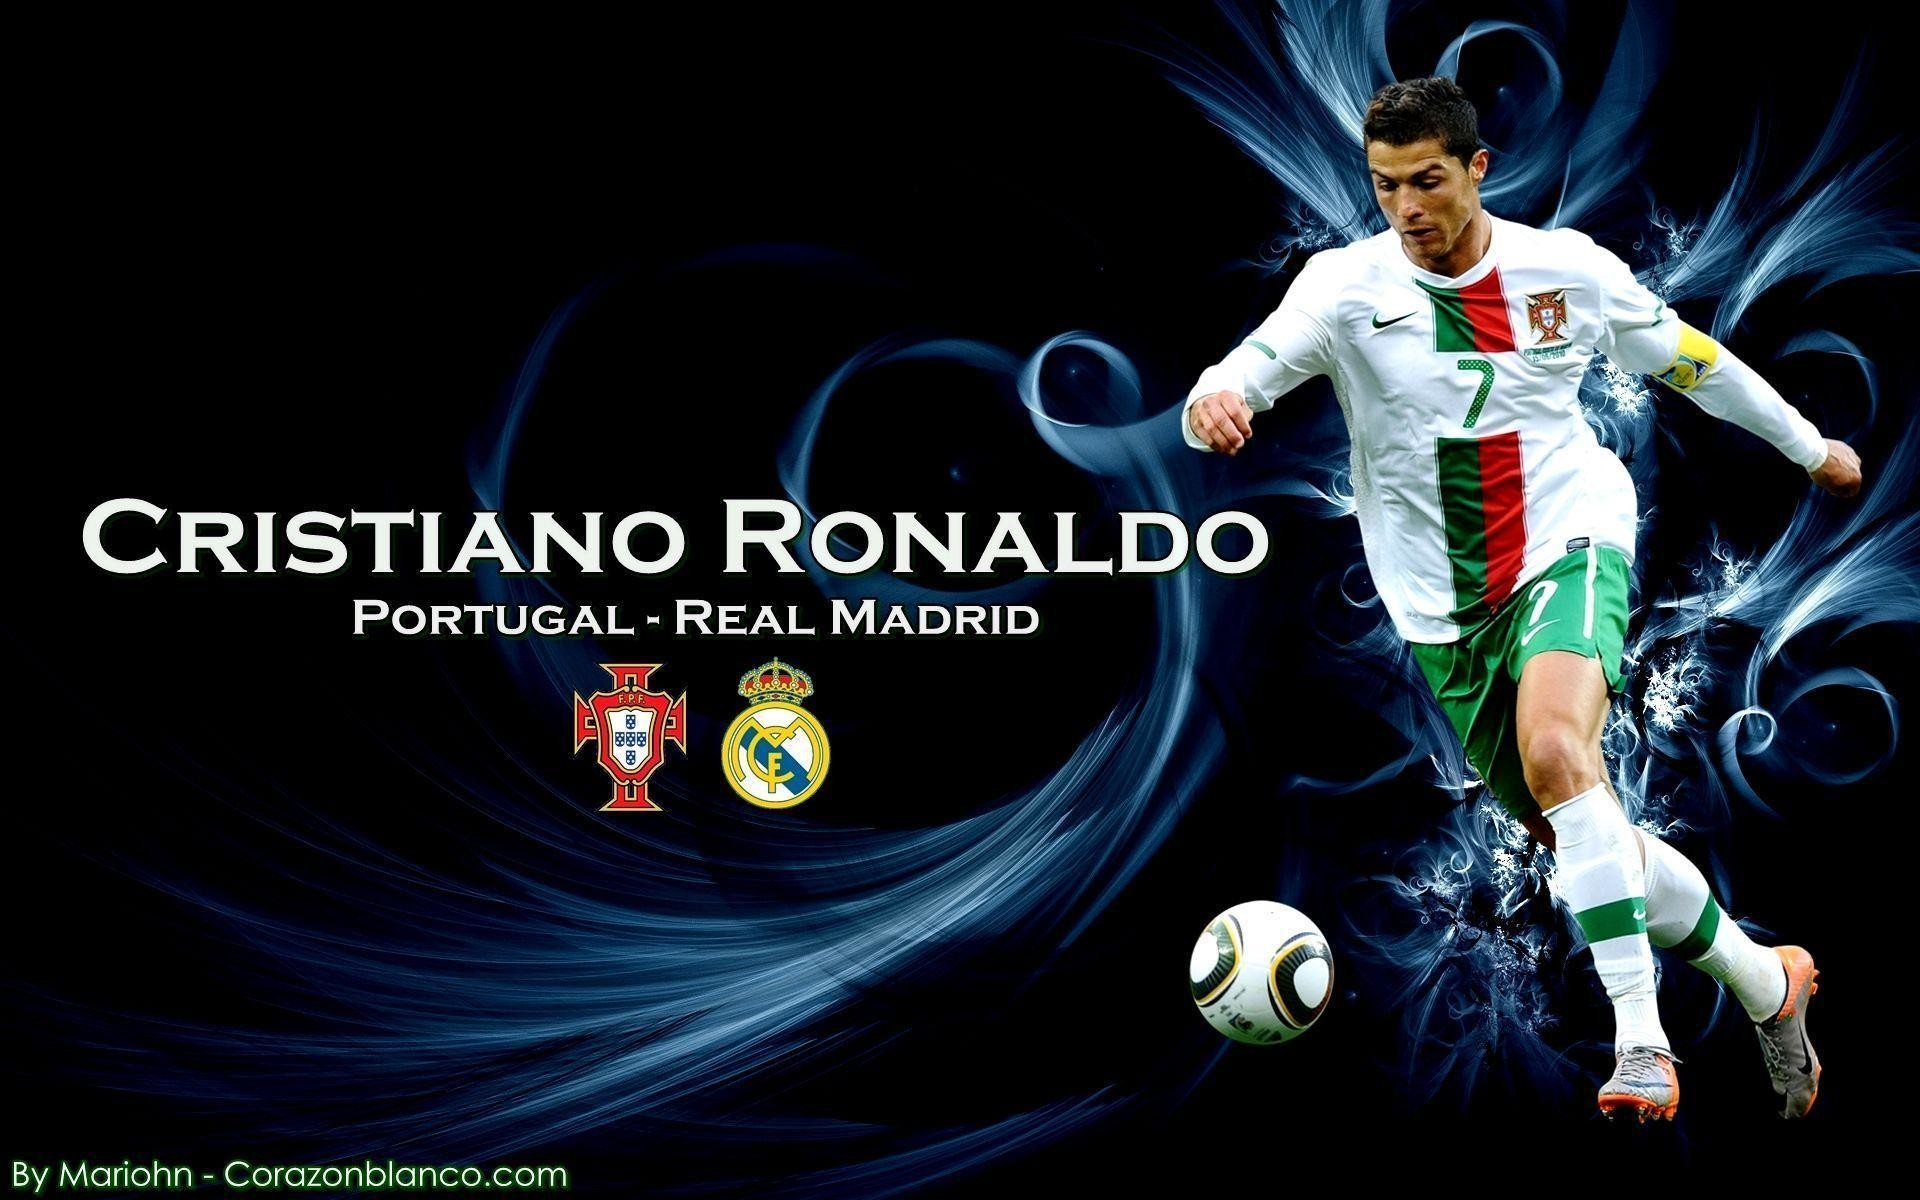 1920x1200 Real Madrid Cristiano Ronaldo Wallpapers - Wallpaper Cave